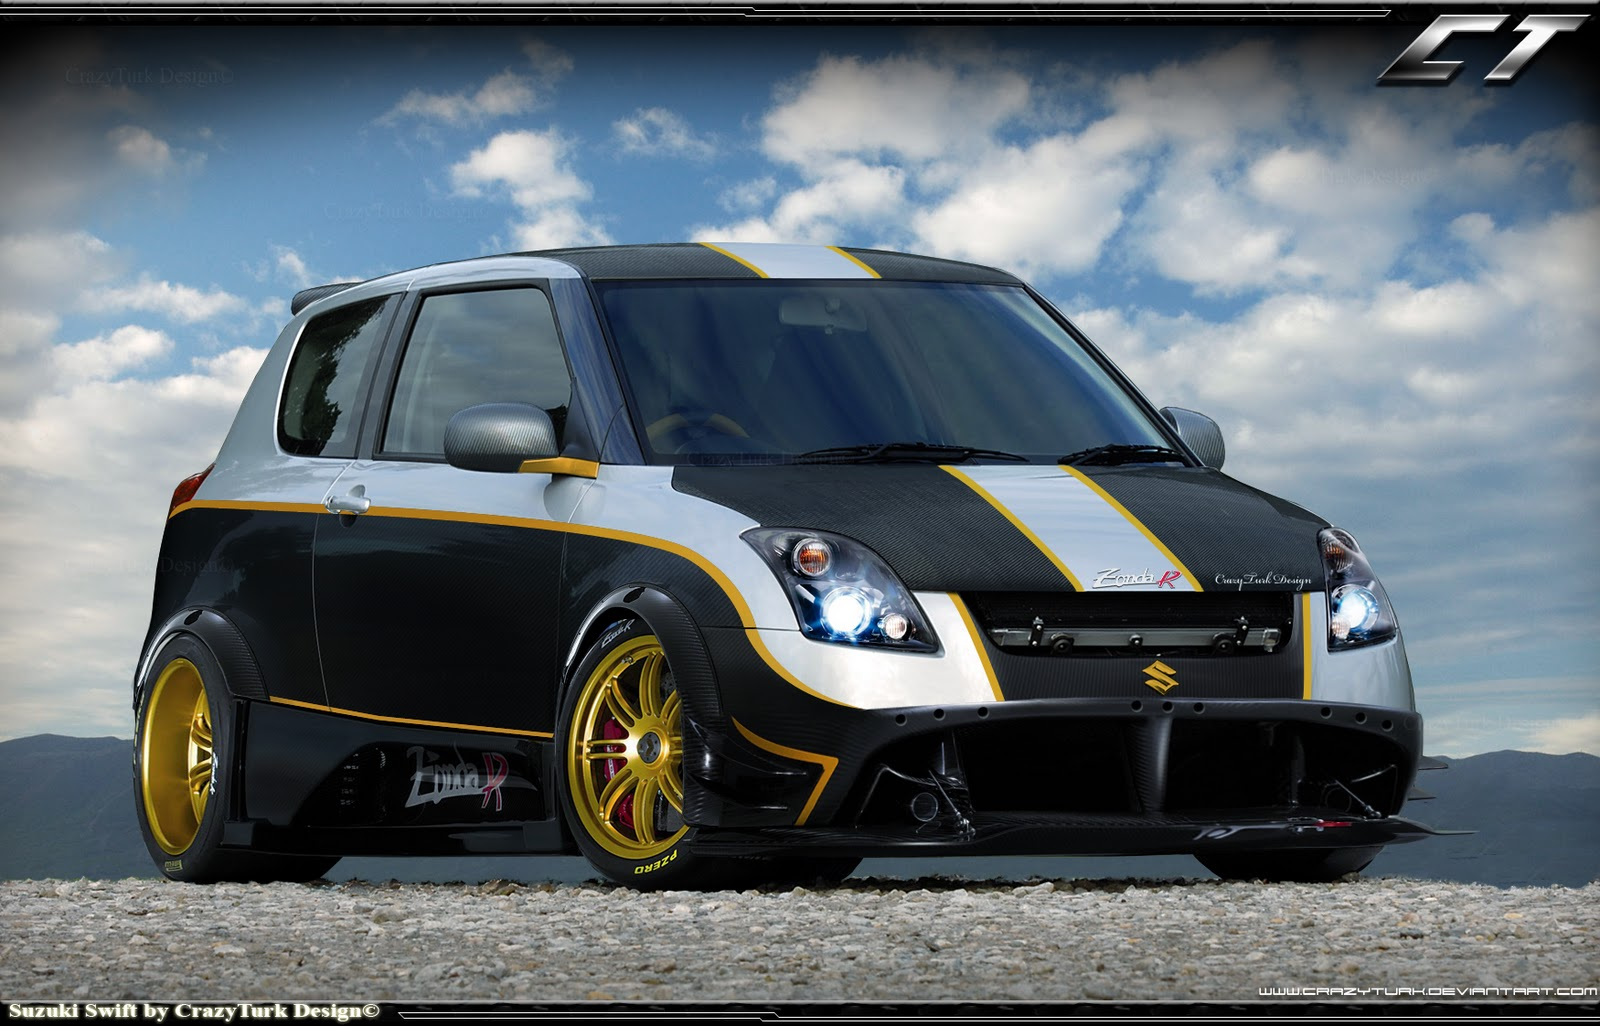 Suzuki Swift Tuning Cars HD